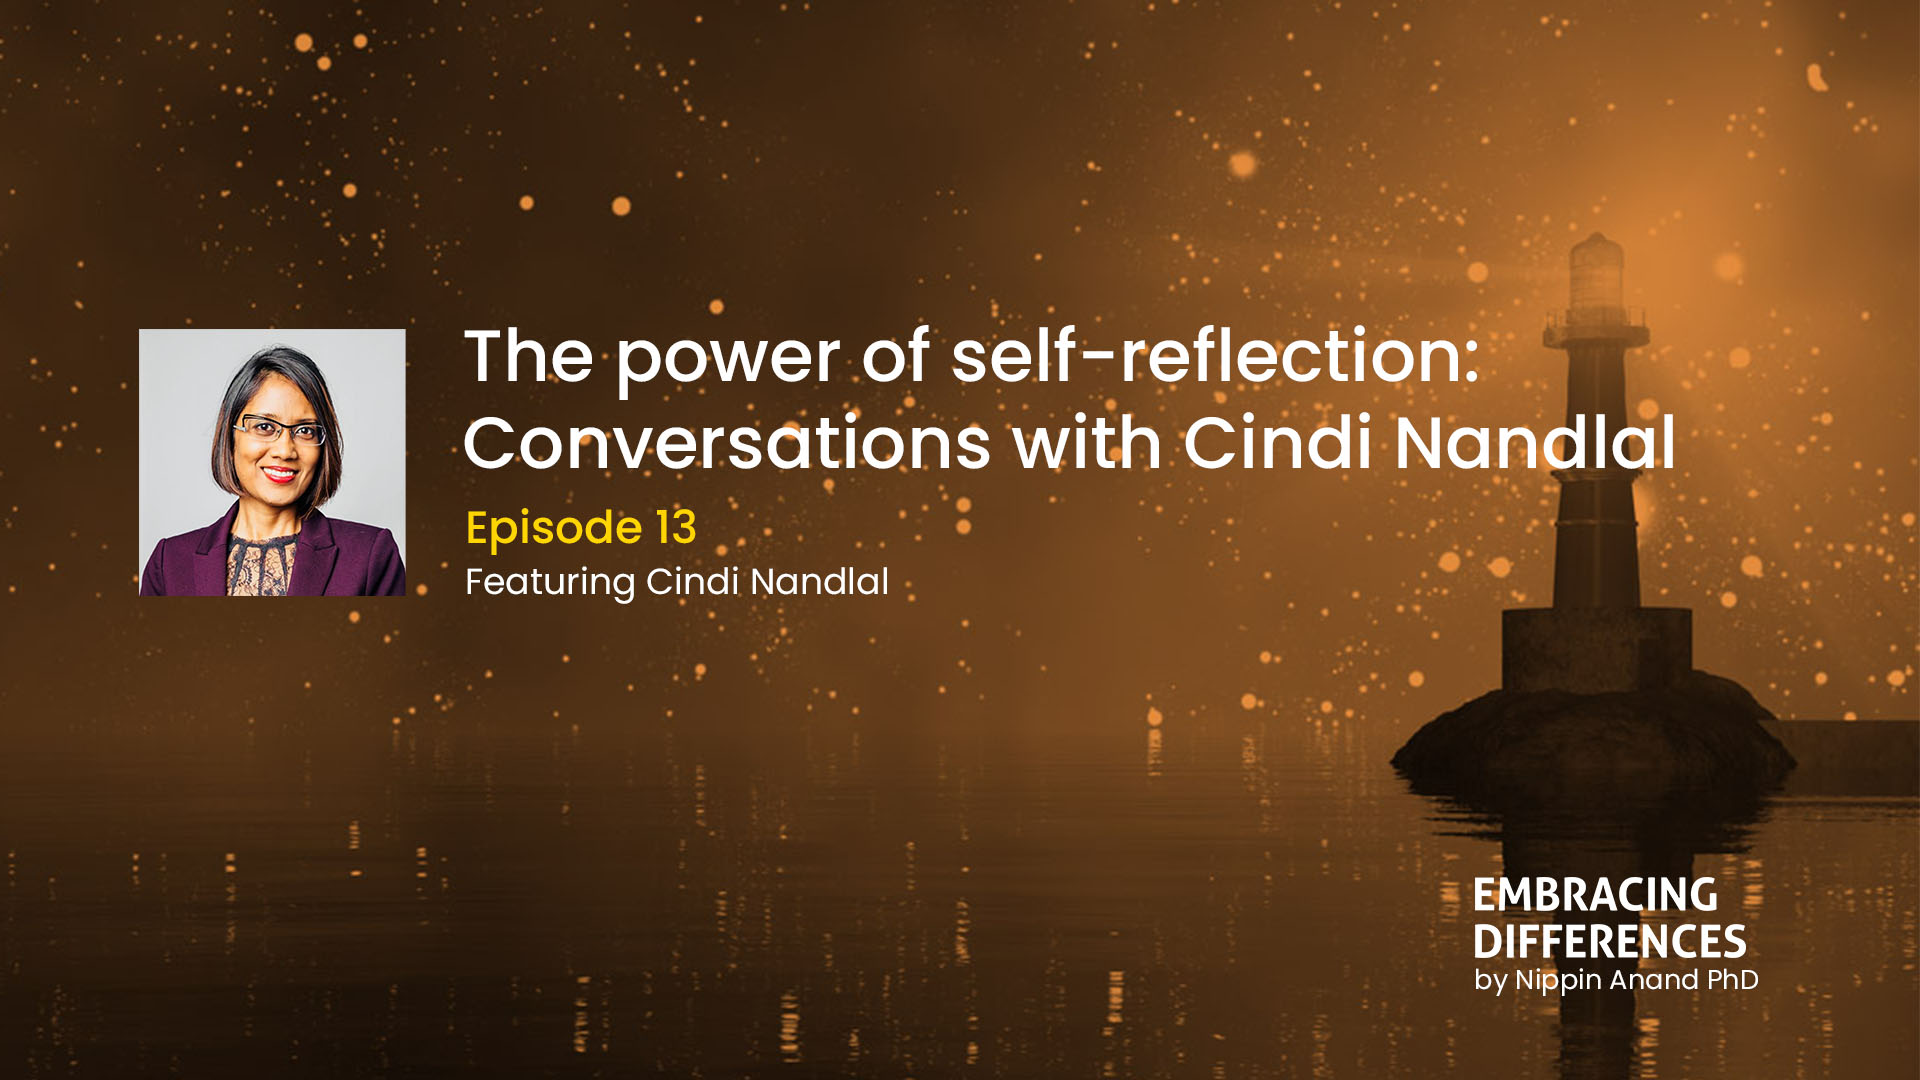 The power of self-reflection: Conversations with Cindi Nandlal